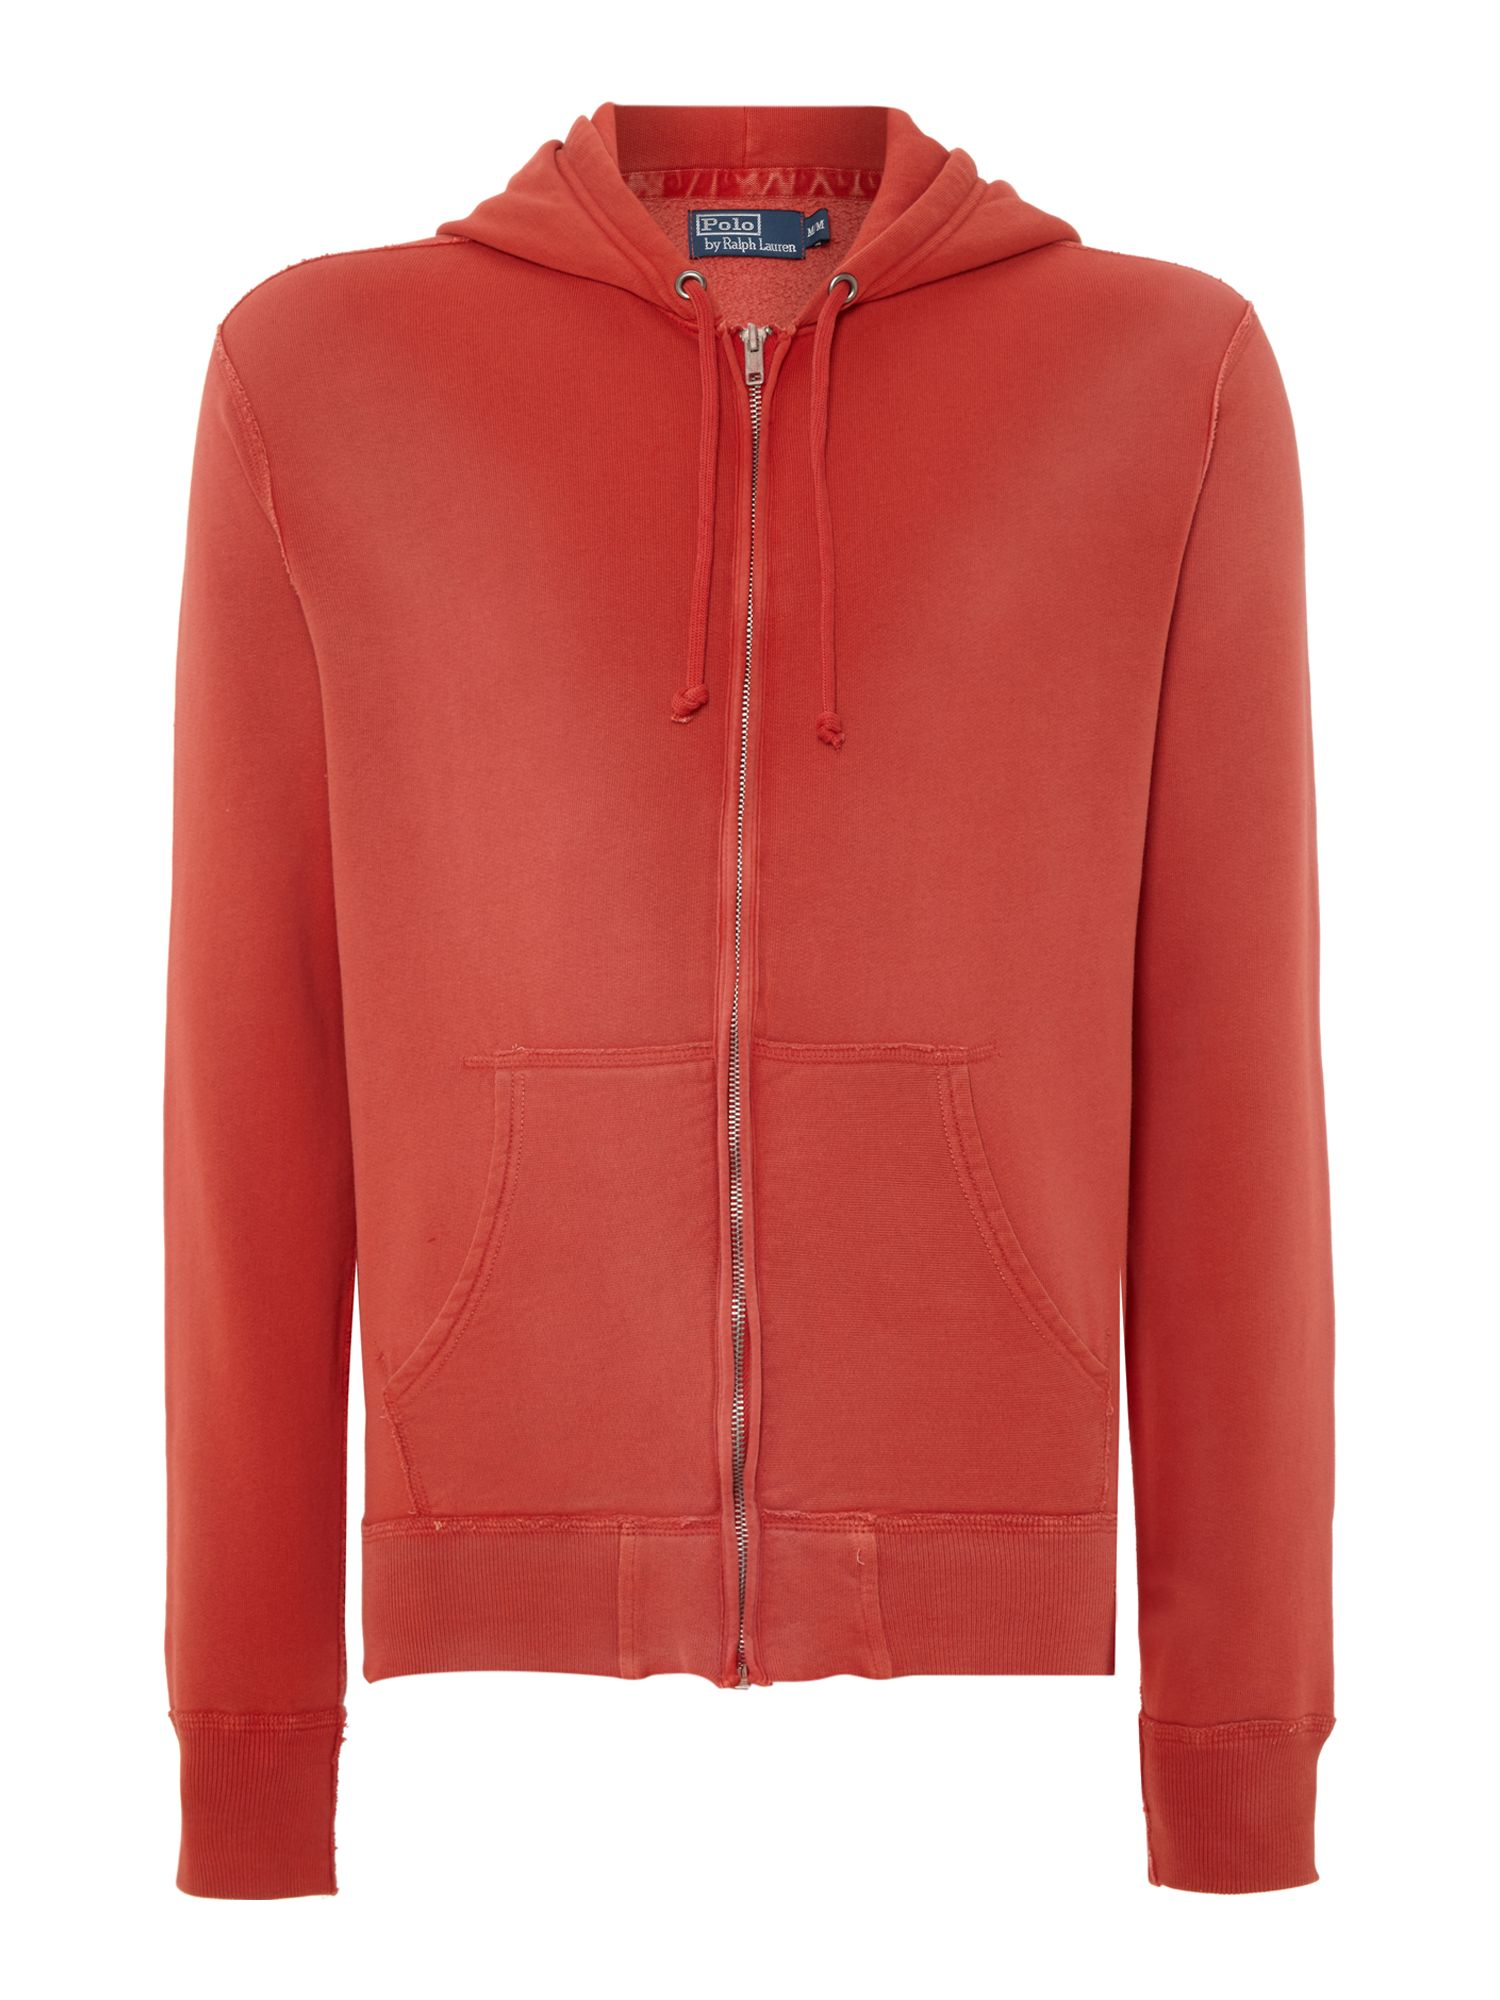 Zip up fleece sweat top